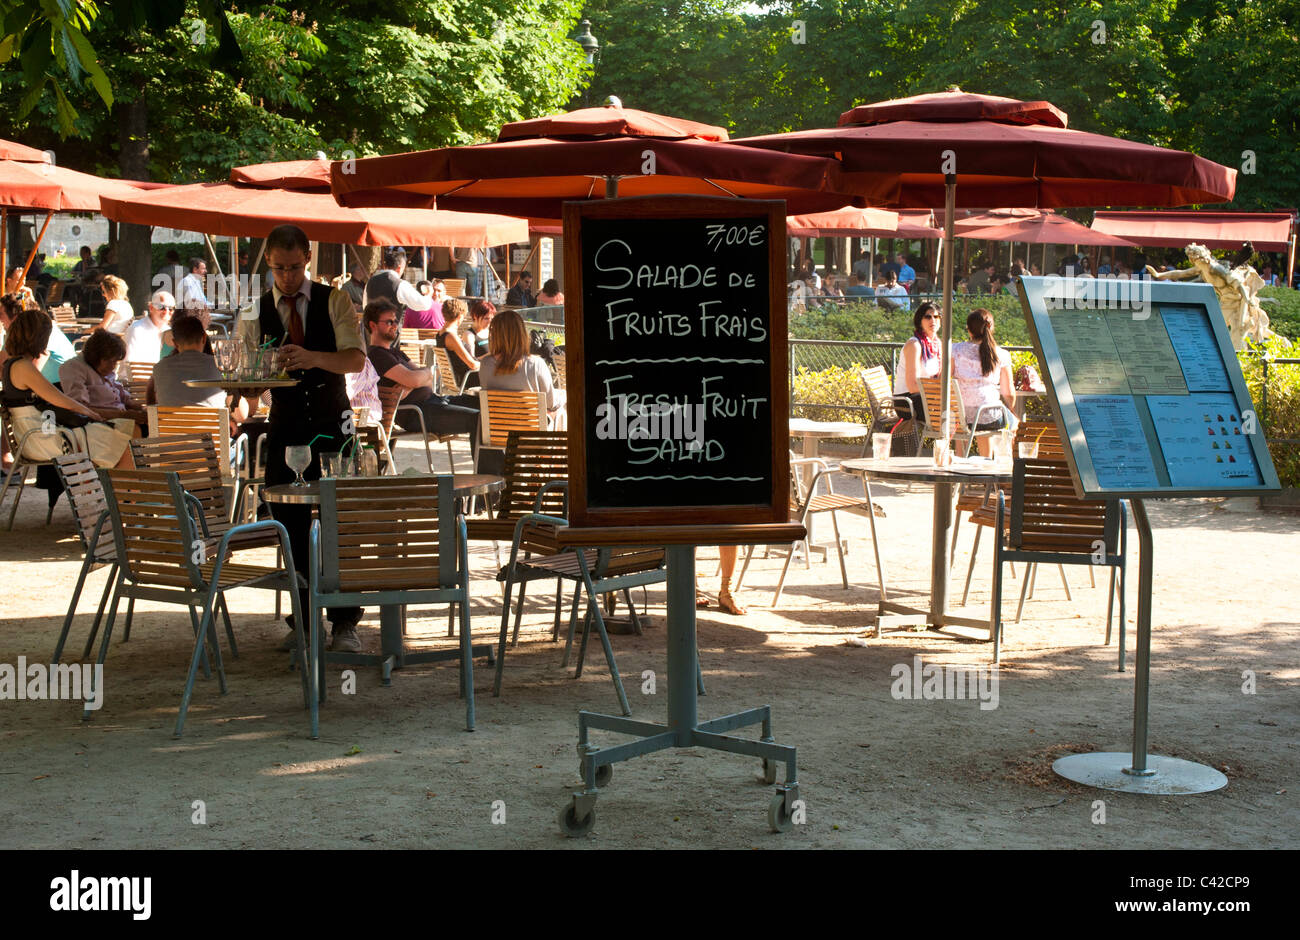 Cafe Du Jardin Stock Photos Cafe Du Jardin Stock Images Alamy